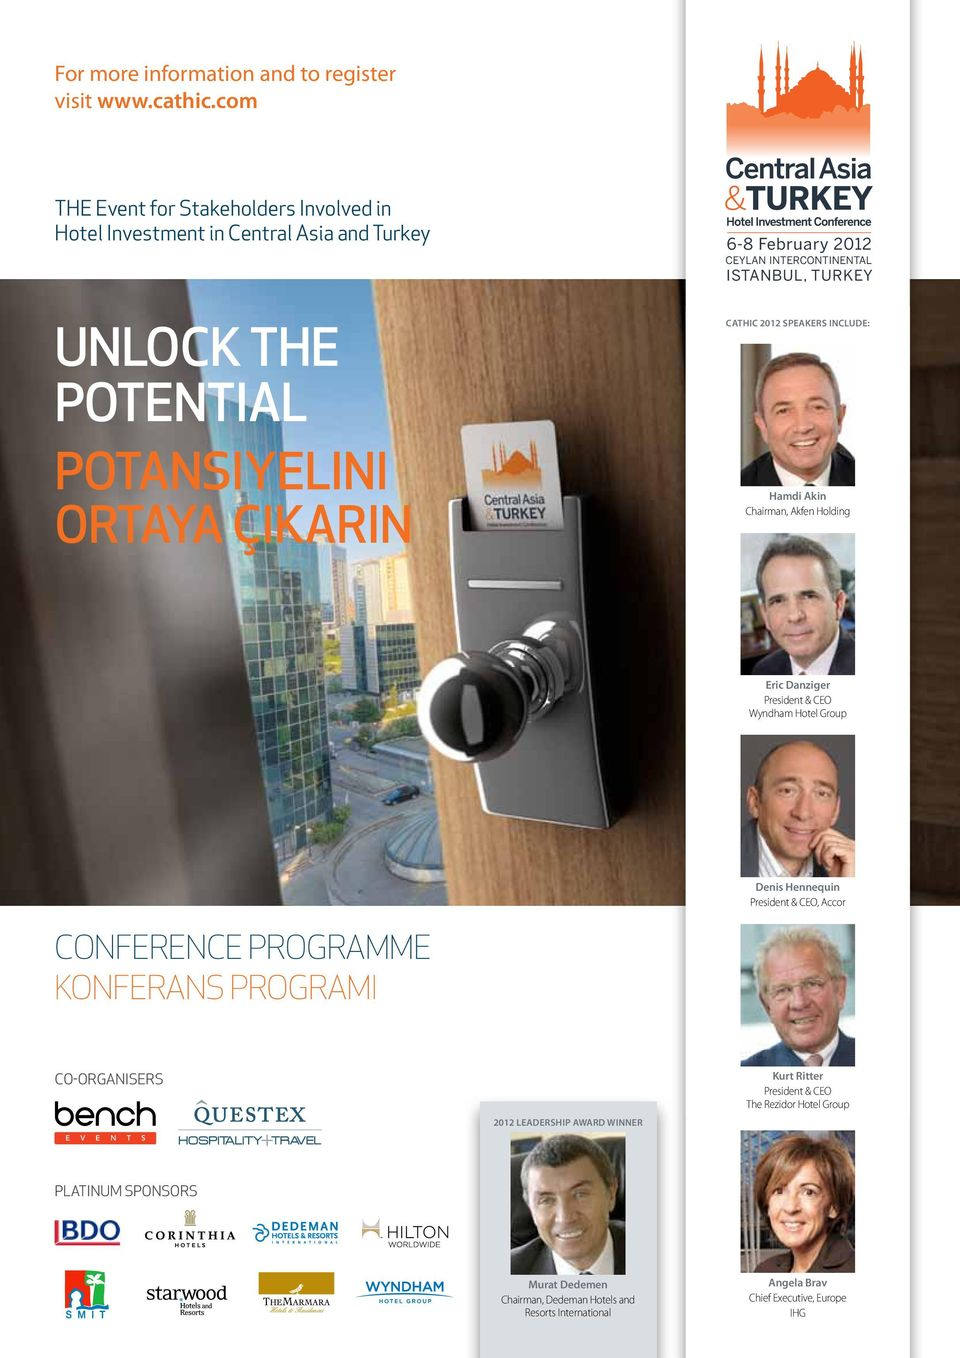 INTERCONTINENTAL ISTANBUL, TURKEY CATHIC 2012 speakers include: Hamdi Akin Chairman, Akfen Holding Eric Danziger President & CEO Wyndham Hotel Group Denis Hennequin